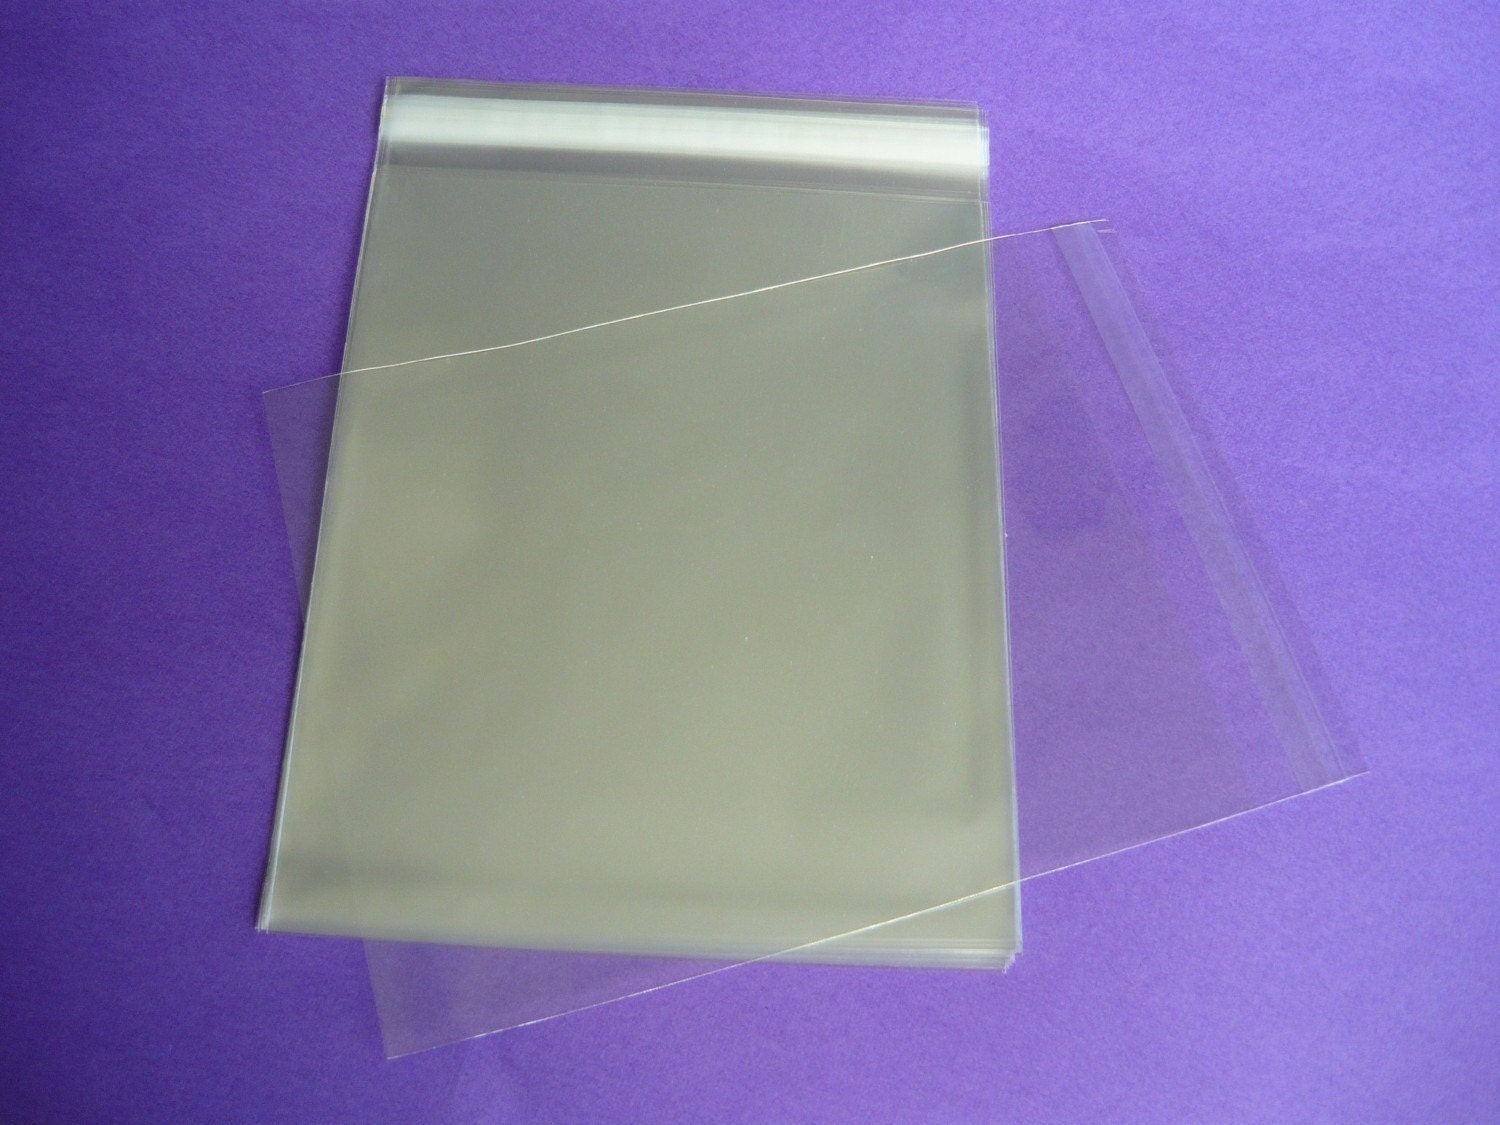 25 124 x 182 12x18 clear resealable cello bag plastic zoom kristyandbryce Choice Image